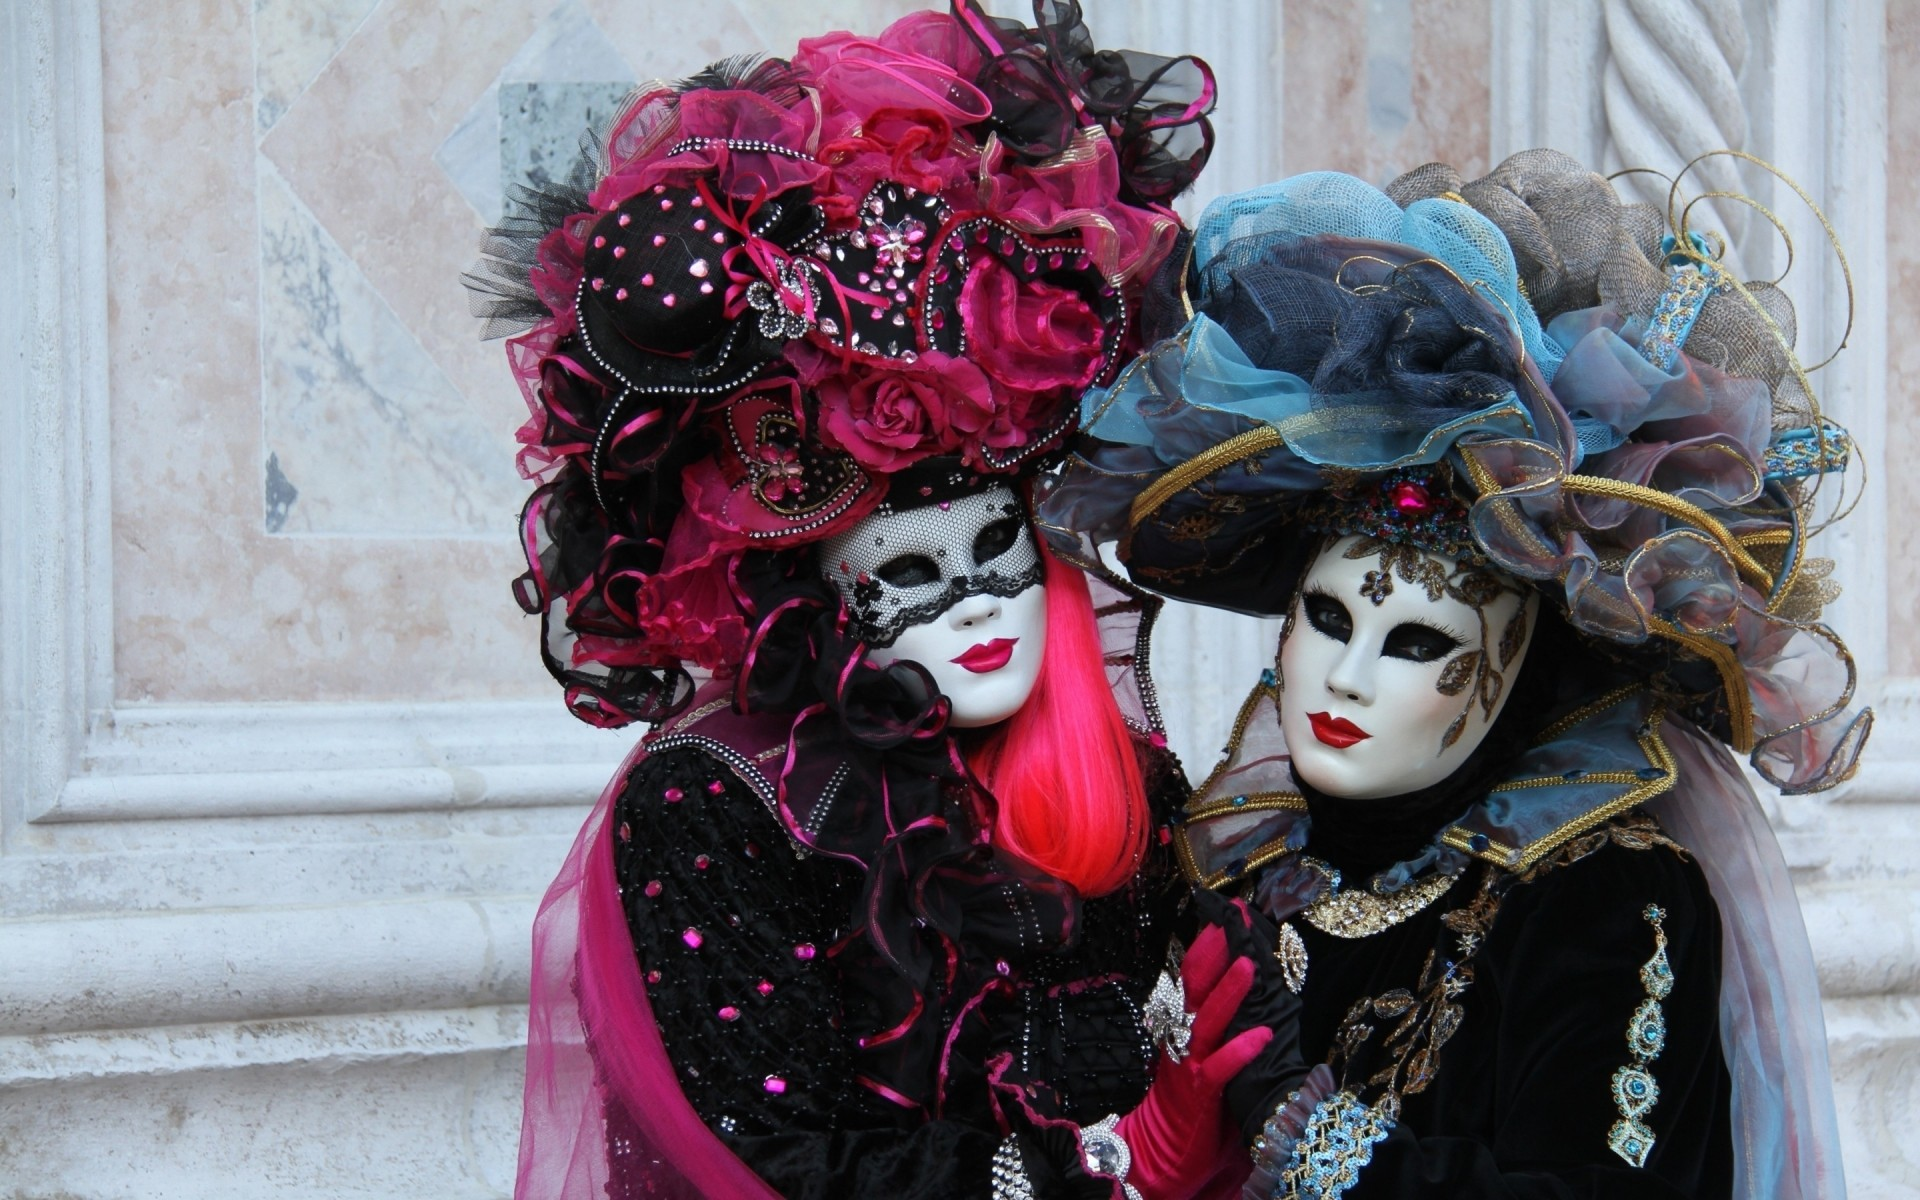 Venice Carnival Iphone Wallpapers For Free